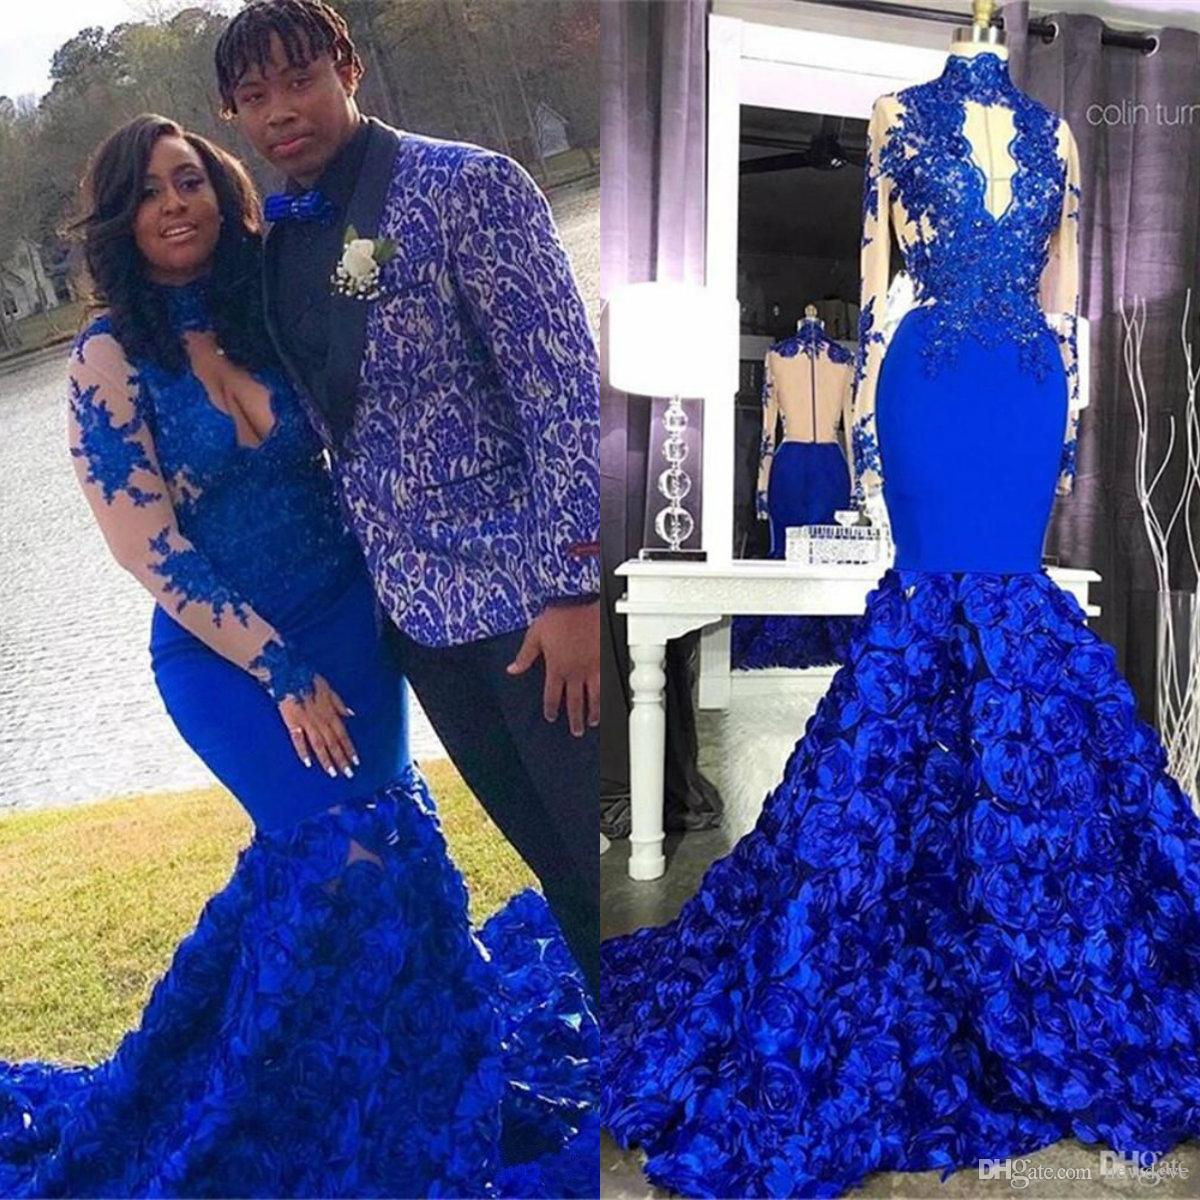 a60f0756d48a 2019 Stunning Prom Dresses 3D Rose Flower Royal Blue High Neck Long Sleeve Applique  Mermaid Prom Evening Gowns Special Occasion Dress Greek Style Prom ...